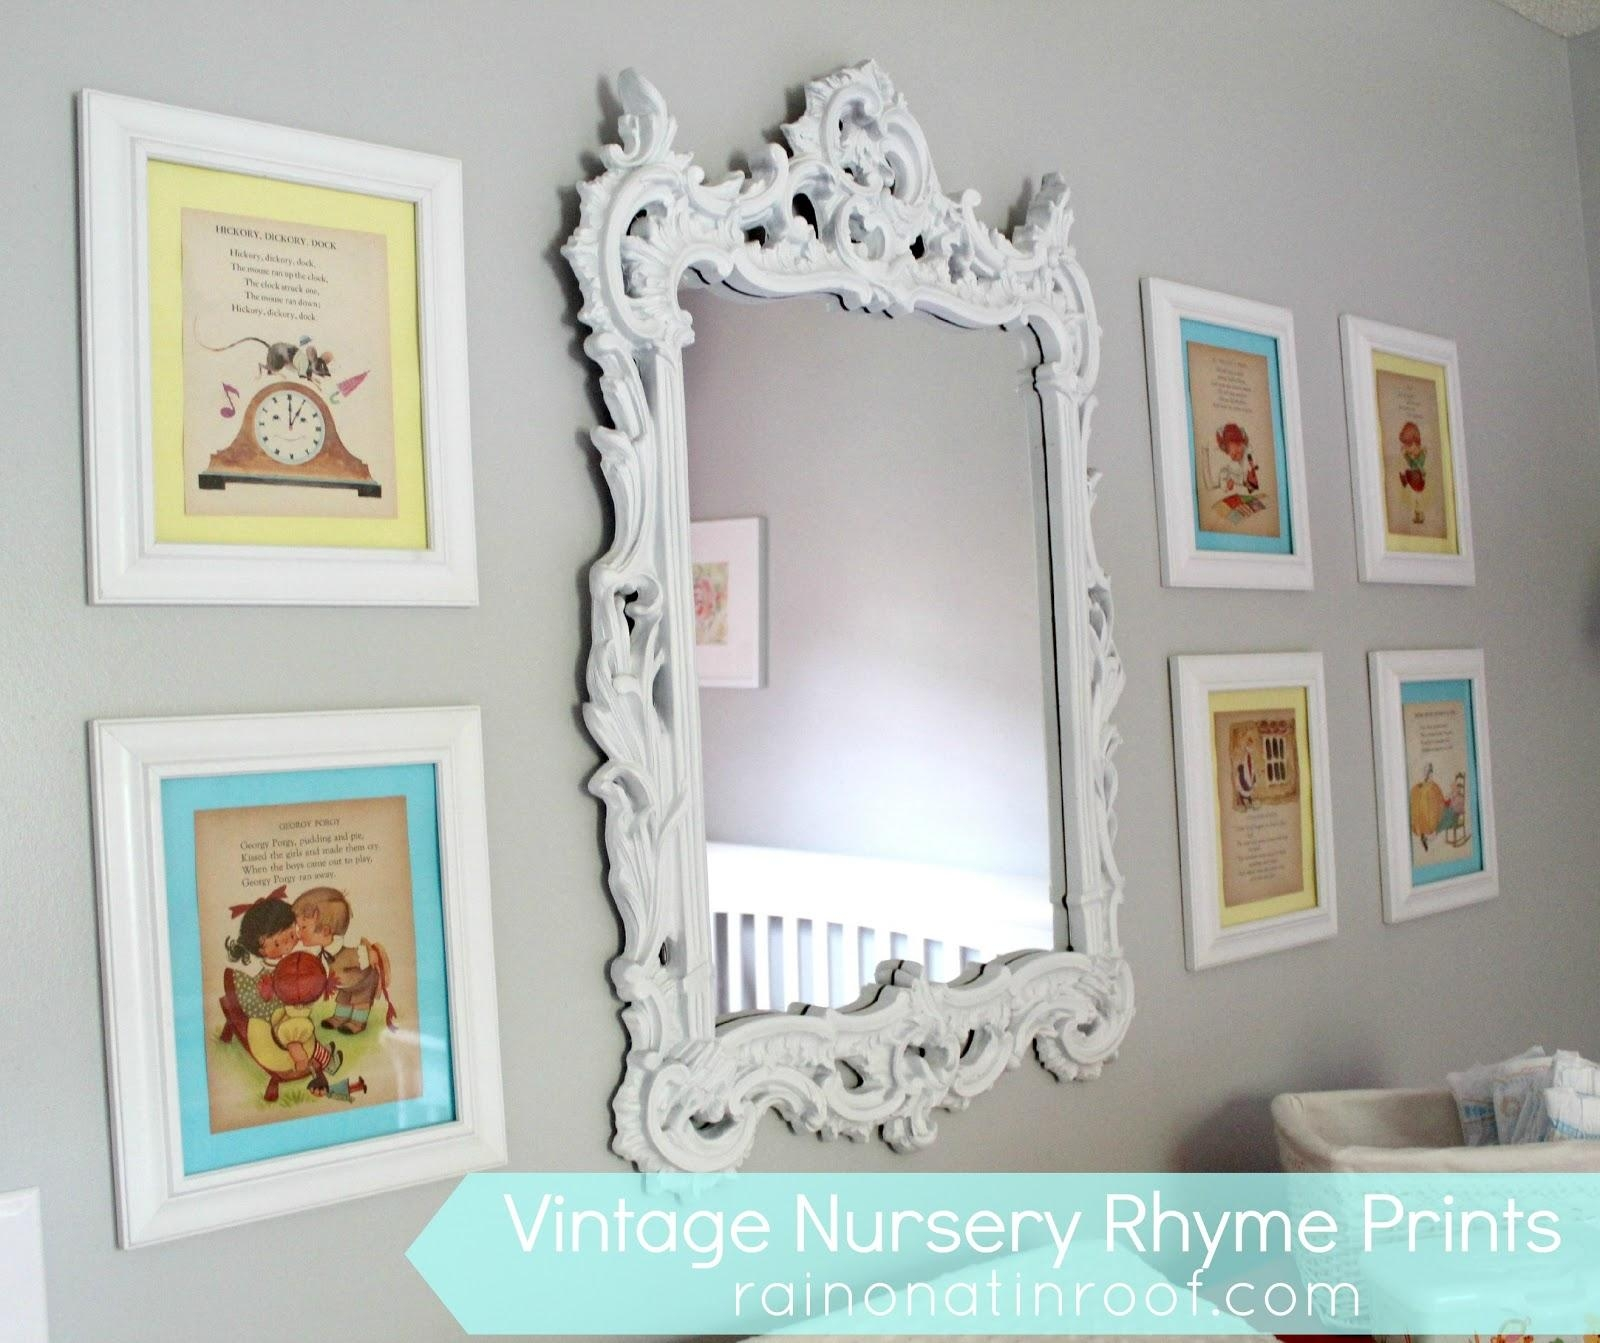 Diy Vintage Nursery Rhyme Prints: Simple & Cheap With Regard To Nursery Framed Wall Art (View 11 of 20)